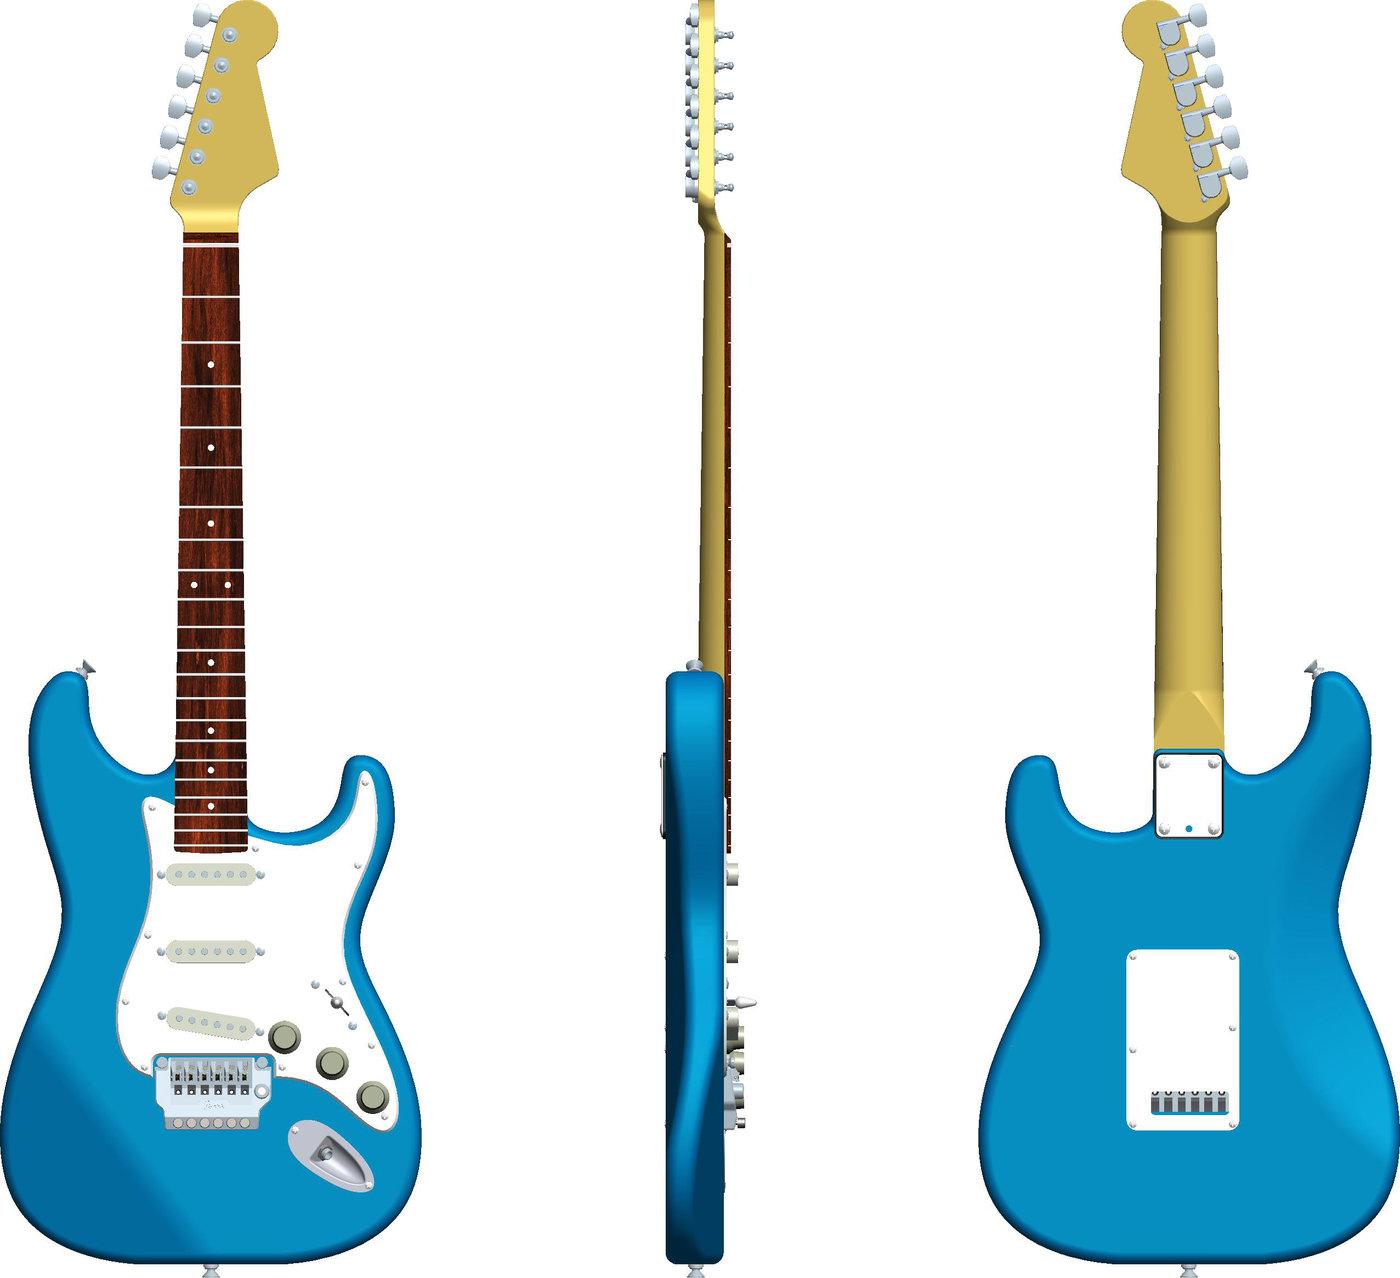 1400x1278 modeling of a fender stratocaster